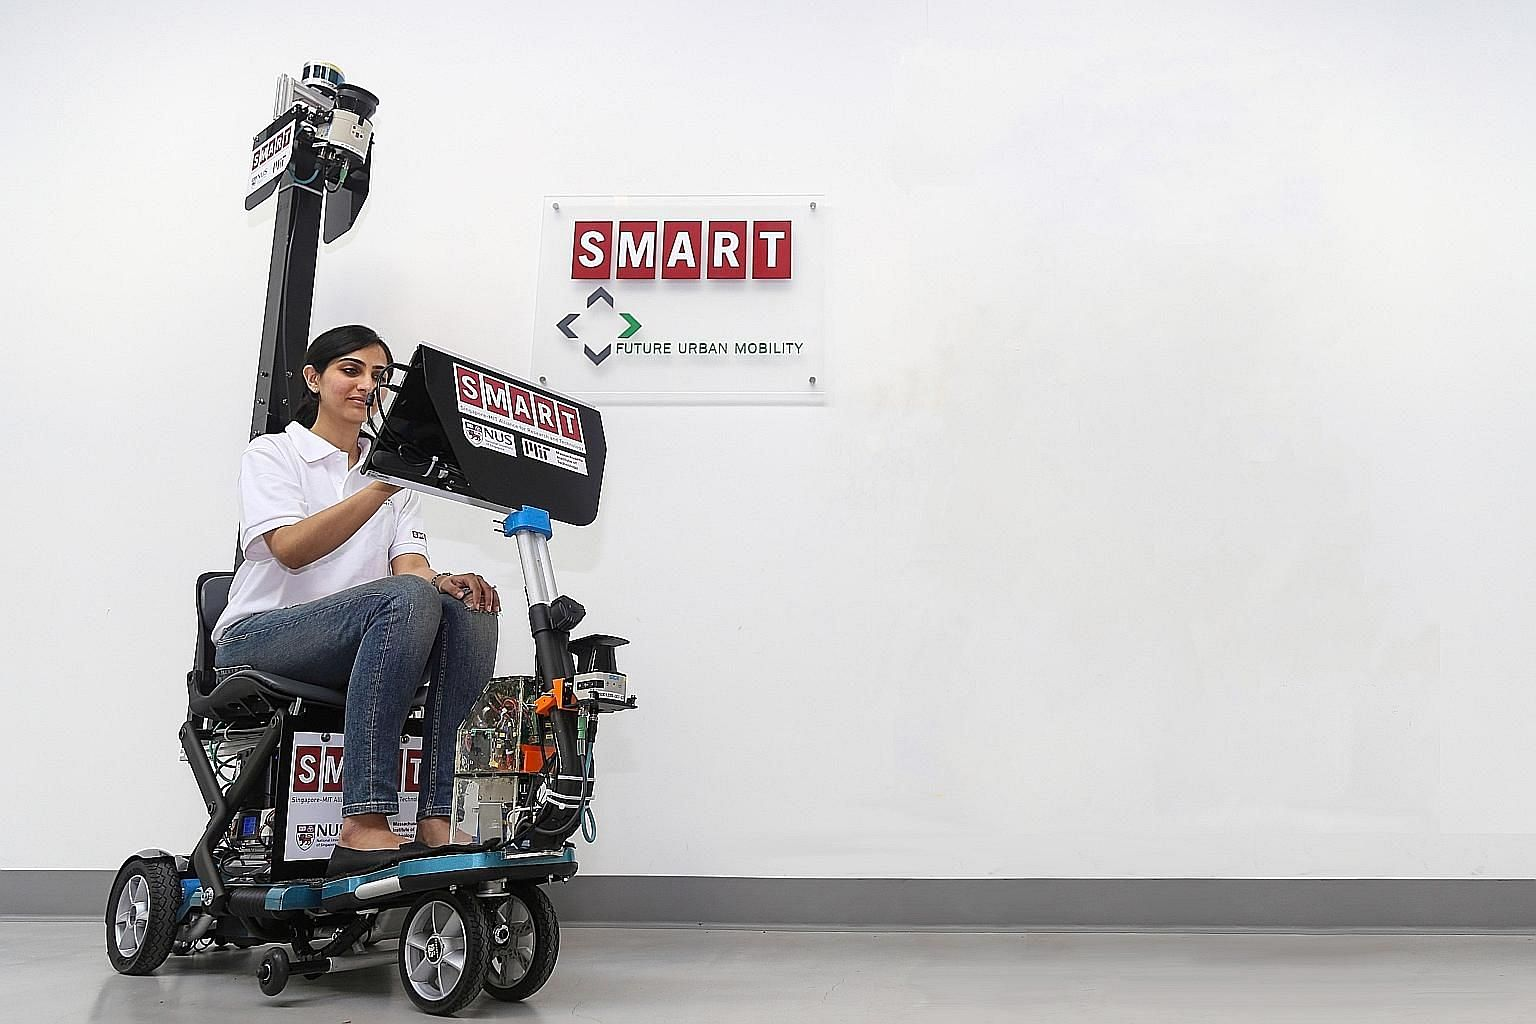 The autonomous scooter weighs about 50kg, runs on battery power and has a maximum speed of about 15kmh. It now costs about $18,000 to build one such scooter.